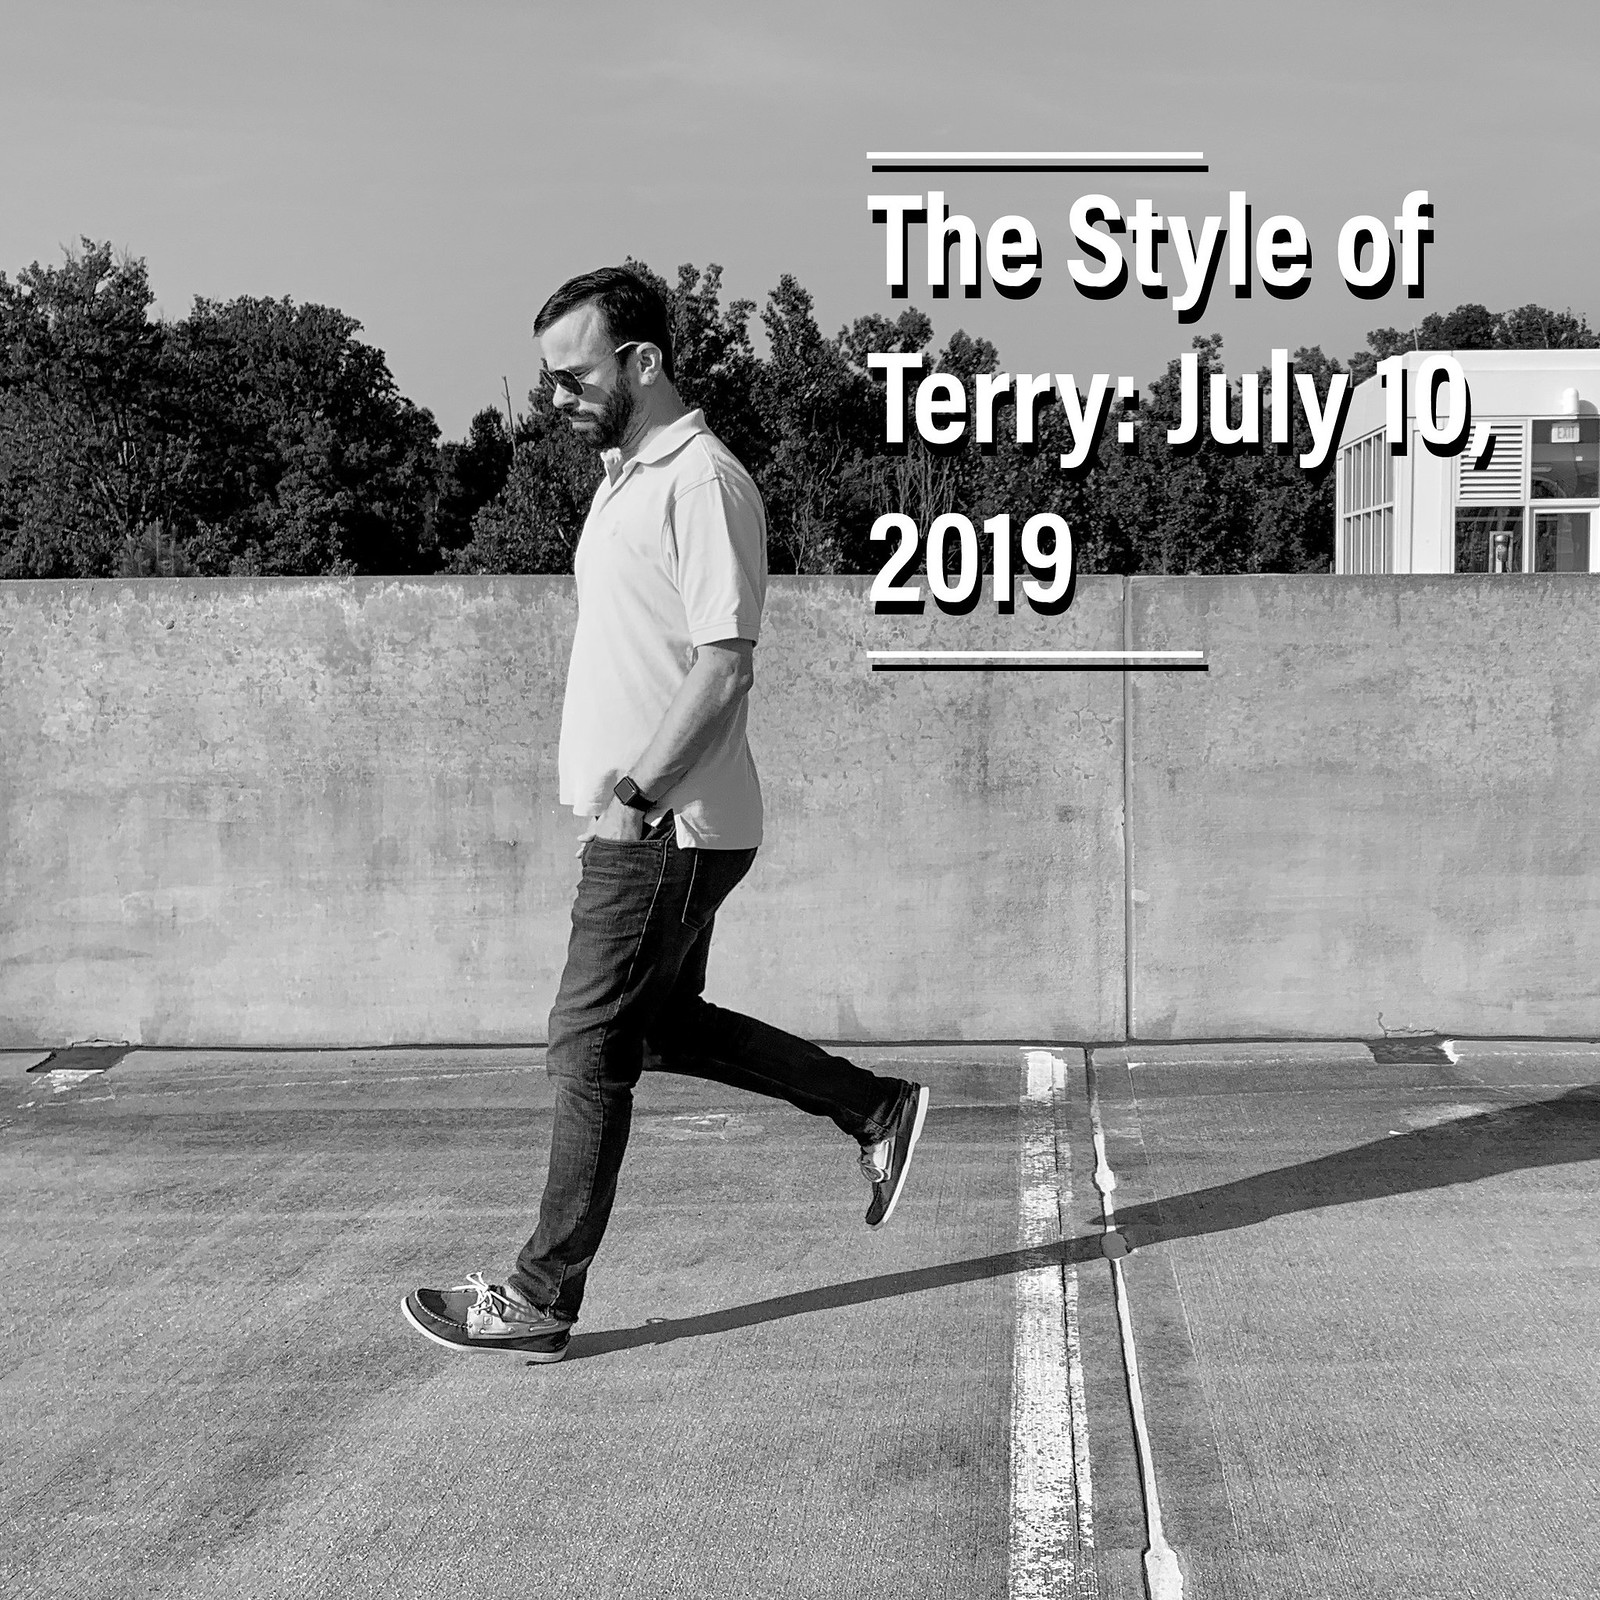 The Style of Terry: 7.10.19